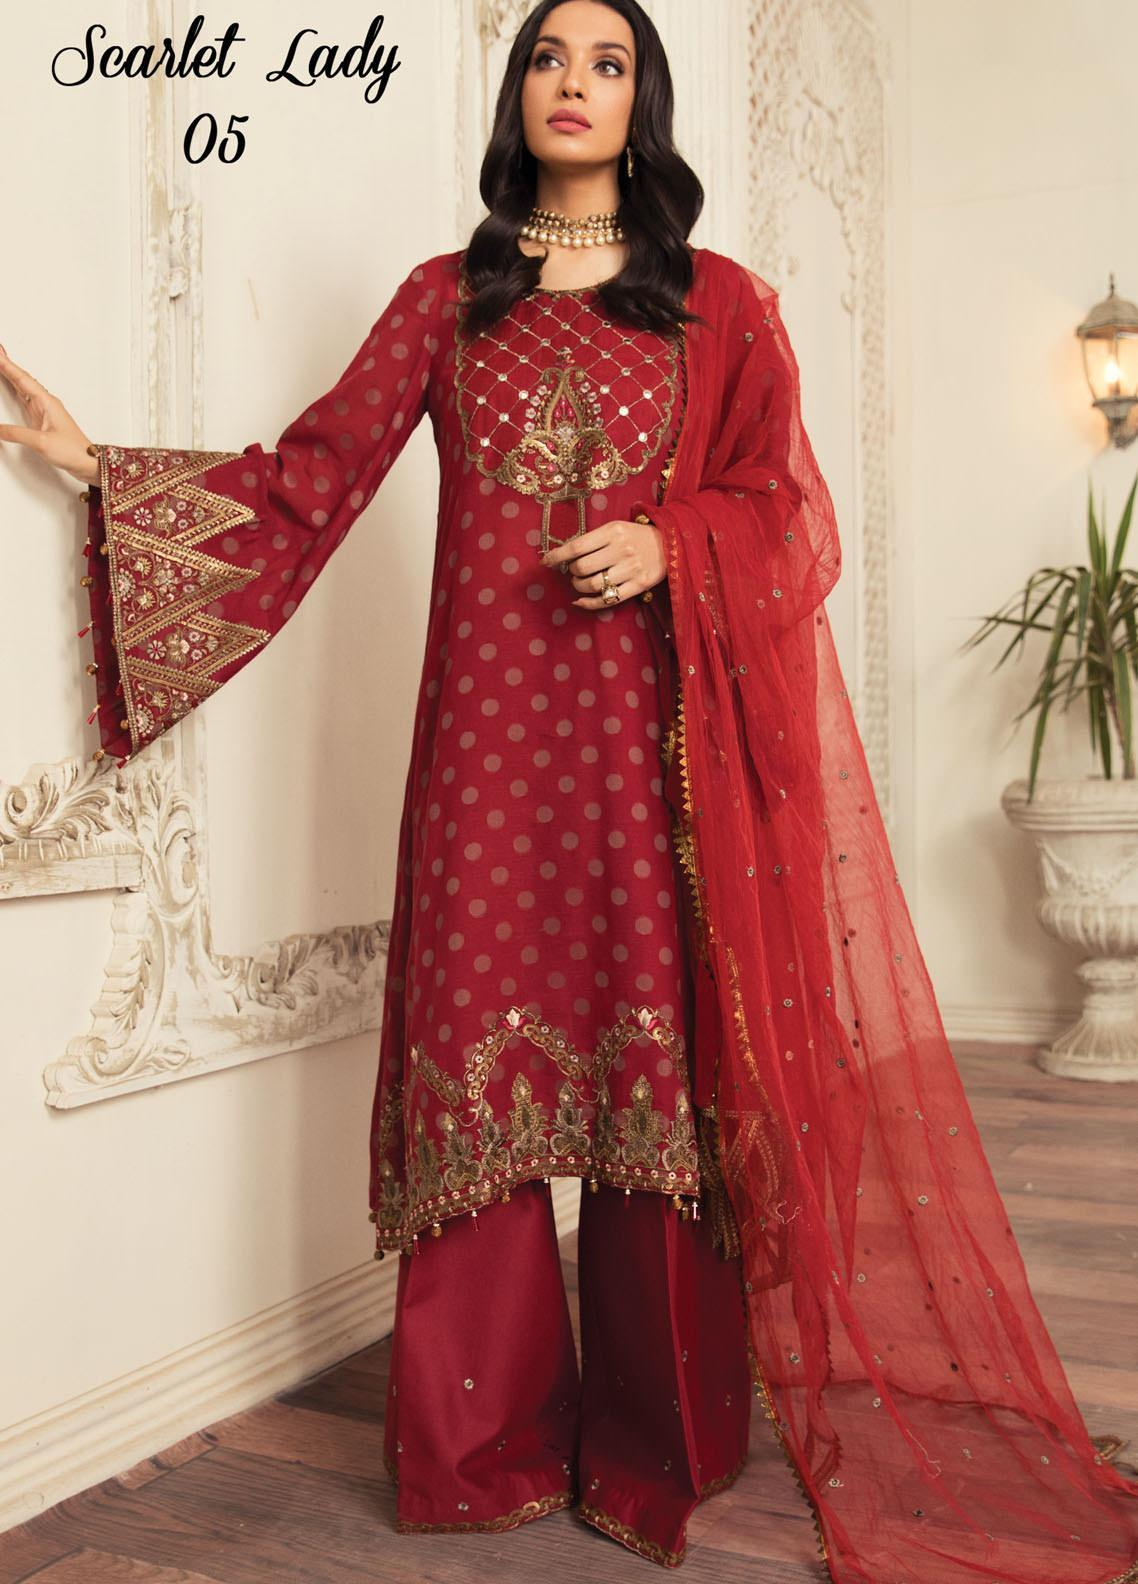 Anamta by Mahwish Ishtiaq Embroidered Jacquard Suits Unstitched 3 Piece ANT21L 05-Scarlet Lady - Luxury Collection